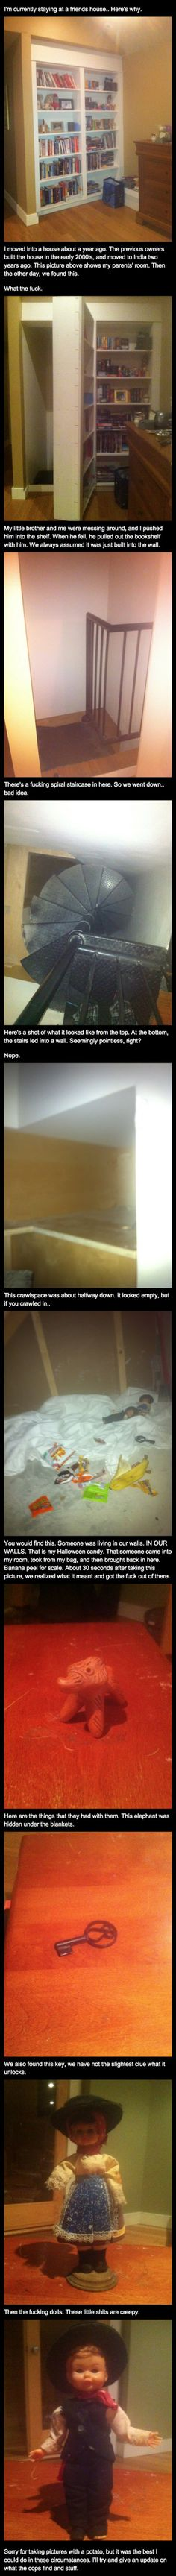 Wtf that is so creepy. It is cool that there's a secret room in your house but someone living there? That's beyond creepy! Satire, Scream, Creepy Stories, Horror Stories, Funny Stories, Lol, Creepypasta, Just For Laughs, Mind Blown